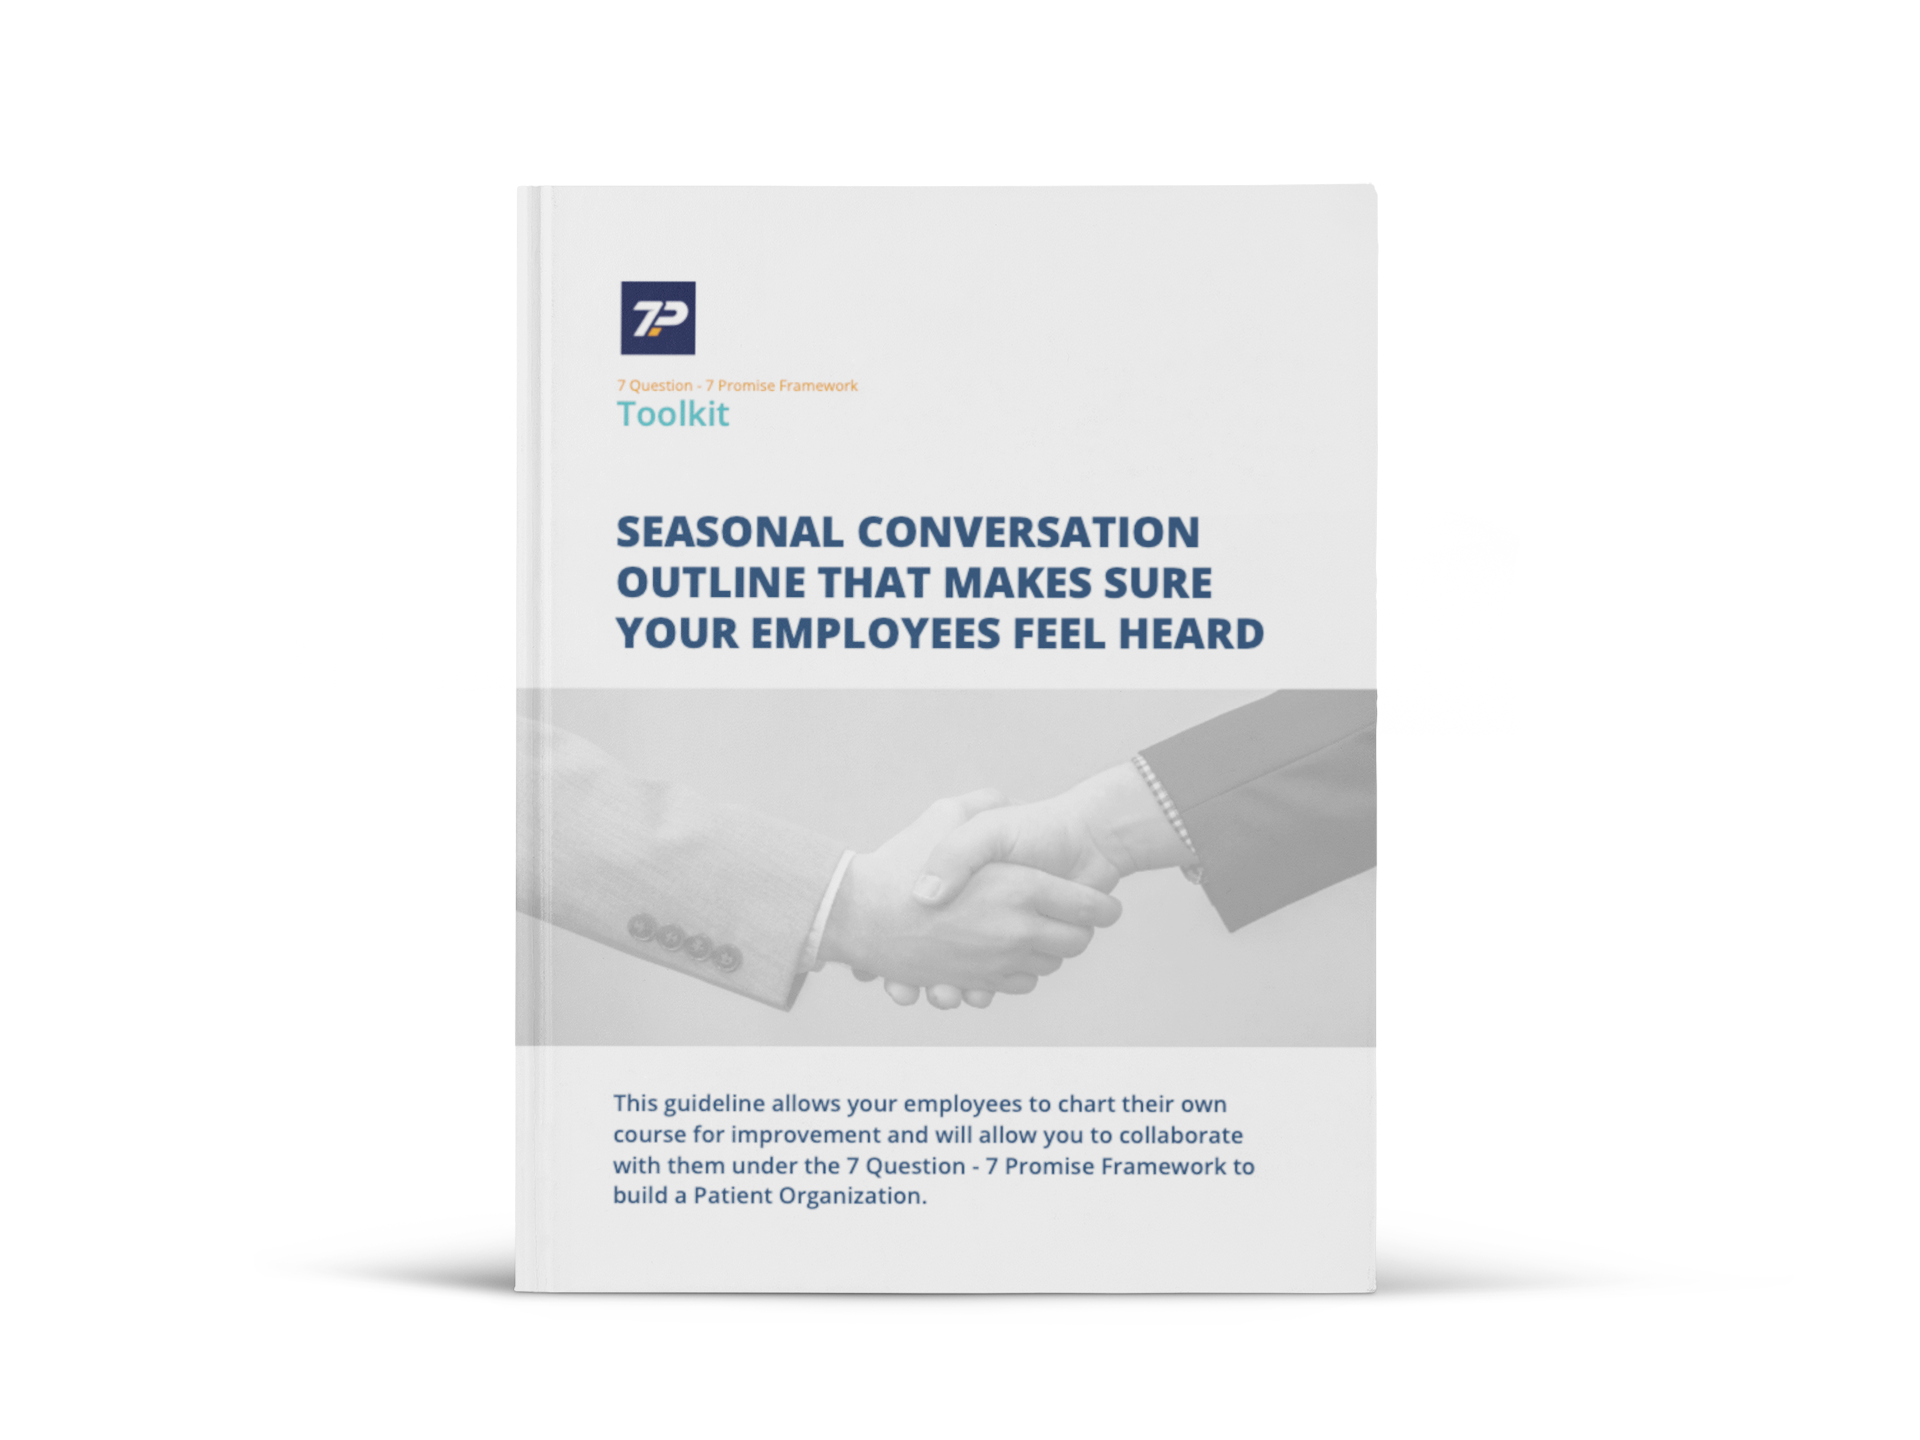 7Q7P Toolkit Seasonal Conversation